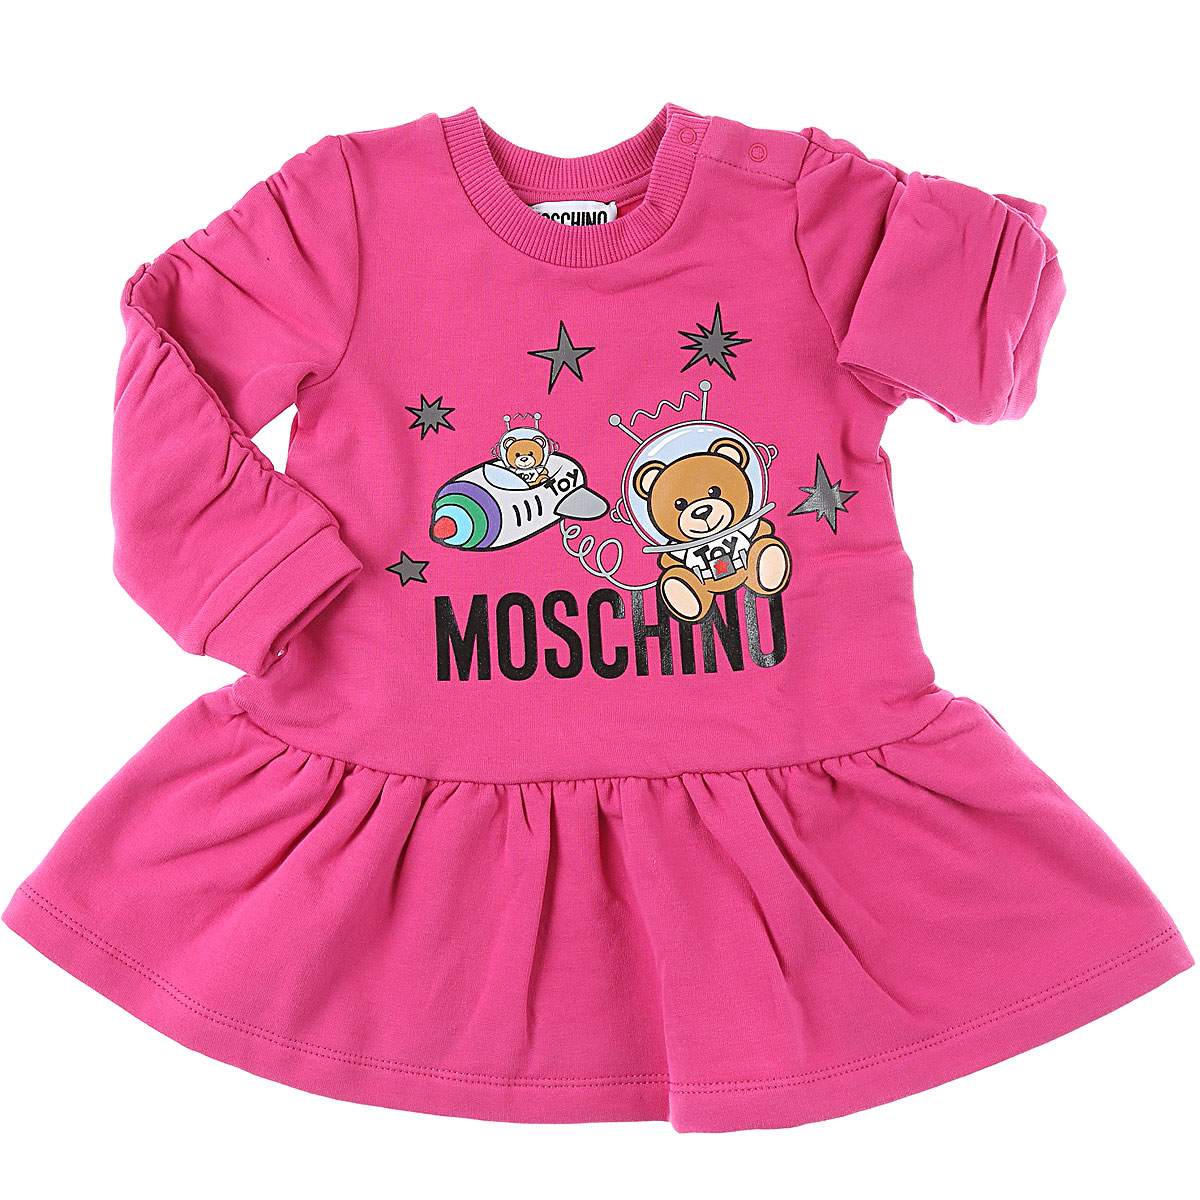 Moschino Baby Dress for Girls On Sale, Fuchsia, Cotton, 2019, 12M 24M